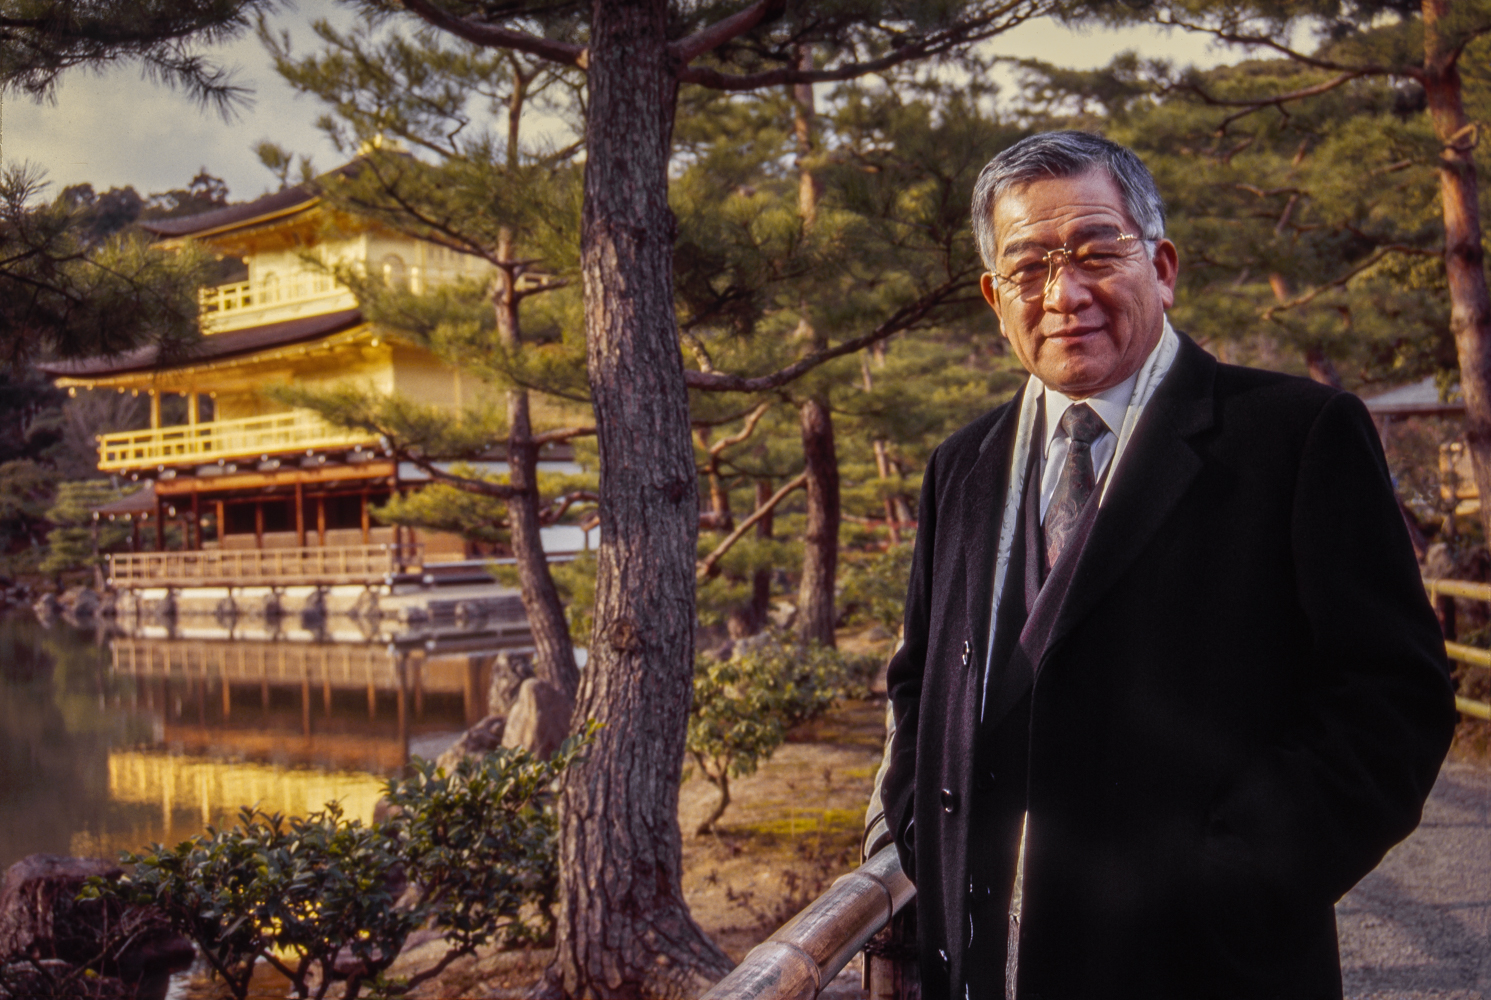 This semiconductor industry executive based in Tokyo represents a Silicon Valley corporation.  He is seen here at Kinkakuji, a Zen temple in Kyoto and the home of shogun Ashikaga Yoshimitsu before his death in 1408.